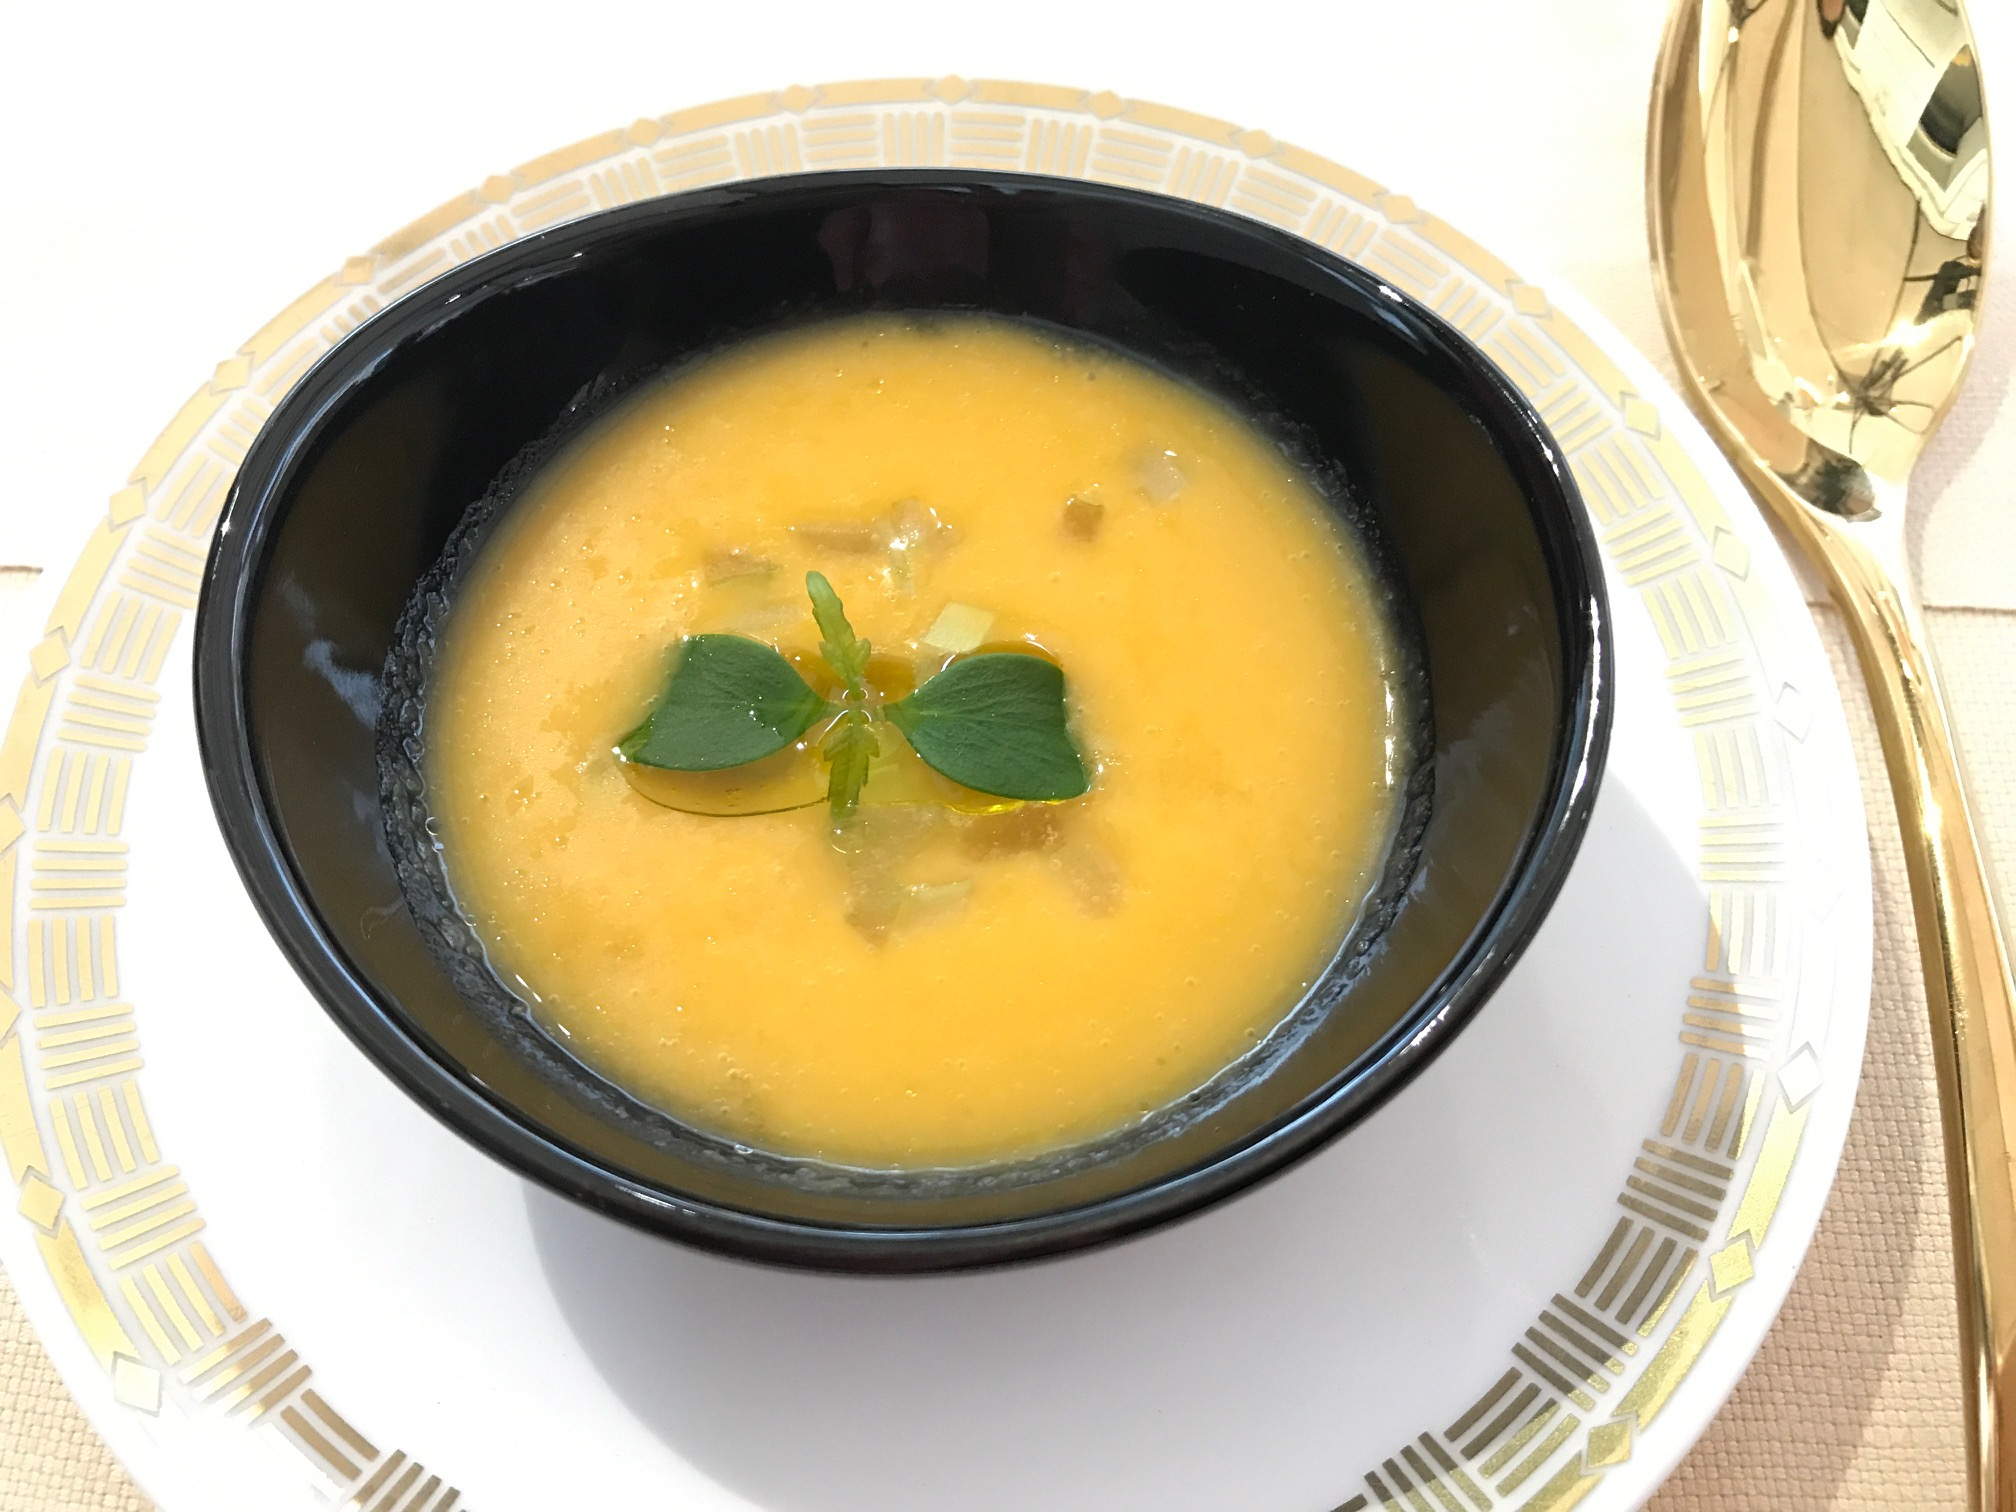 Best Places to Eat in Florence - La Buona Novella - Cantaloupe Soup